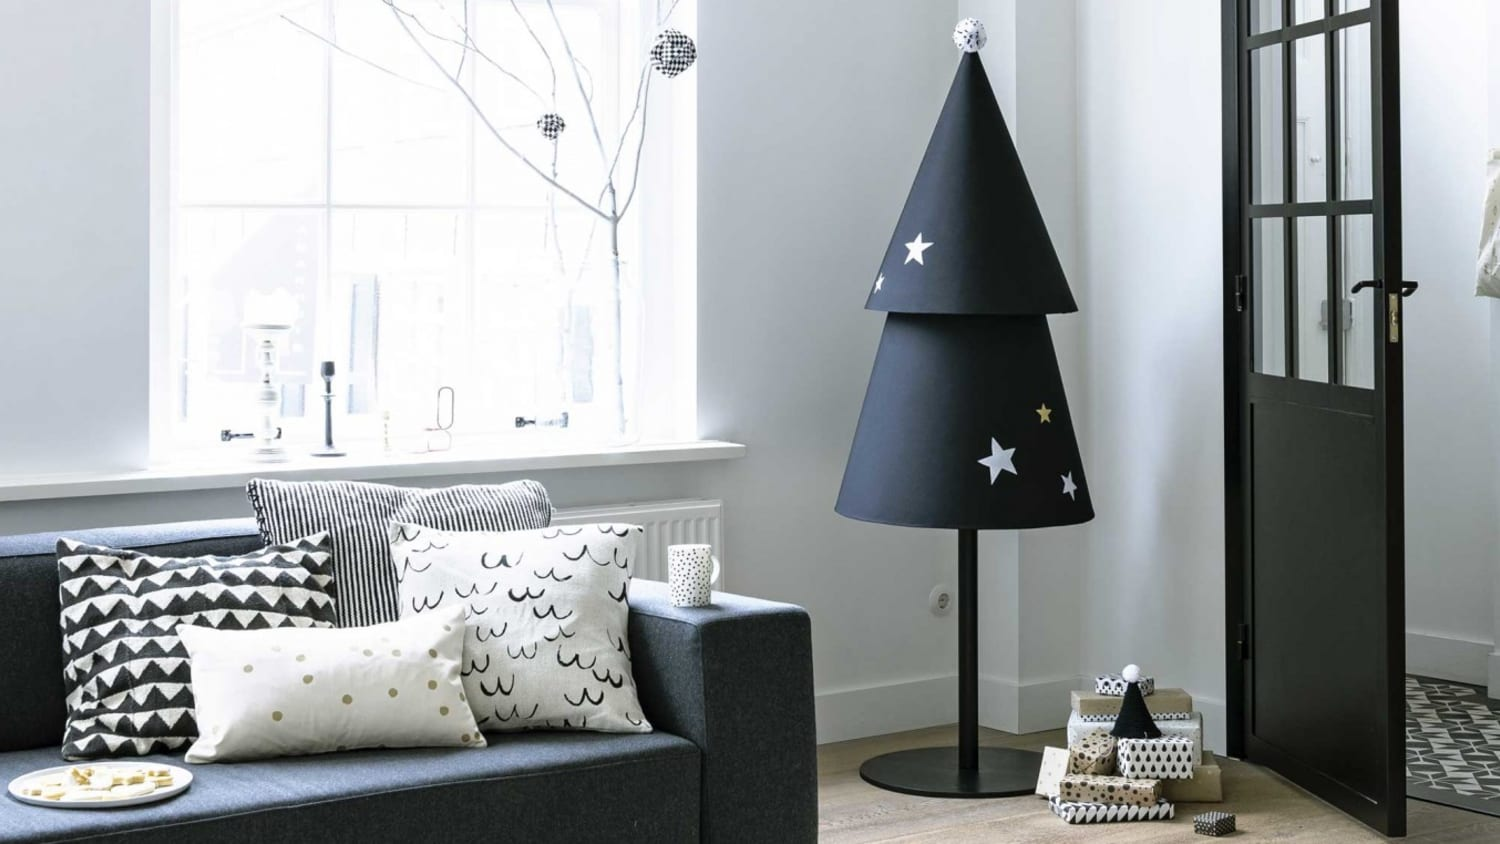 Top 10 Modern Diy Christmas Tree Project Ideas Apartment Therapy